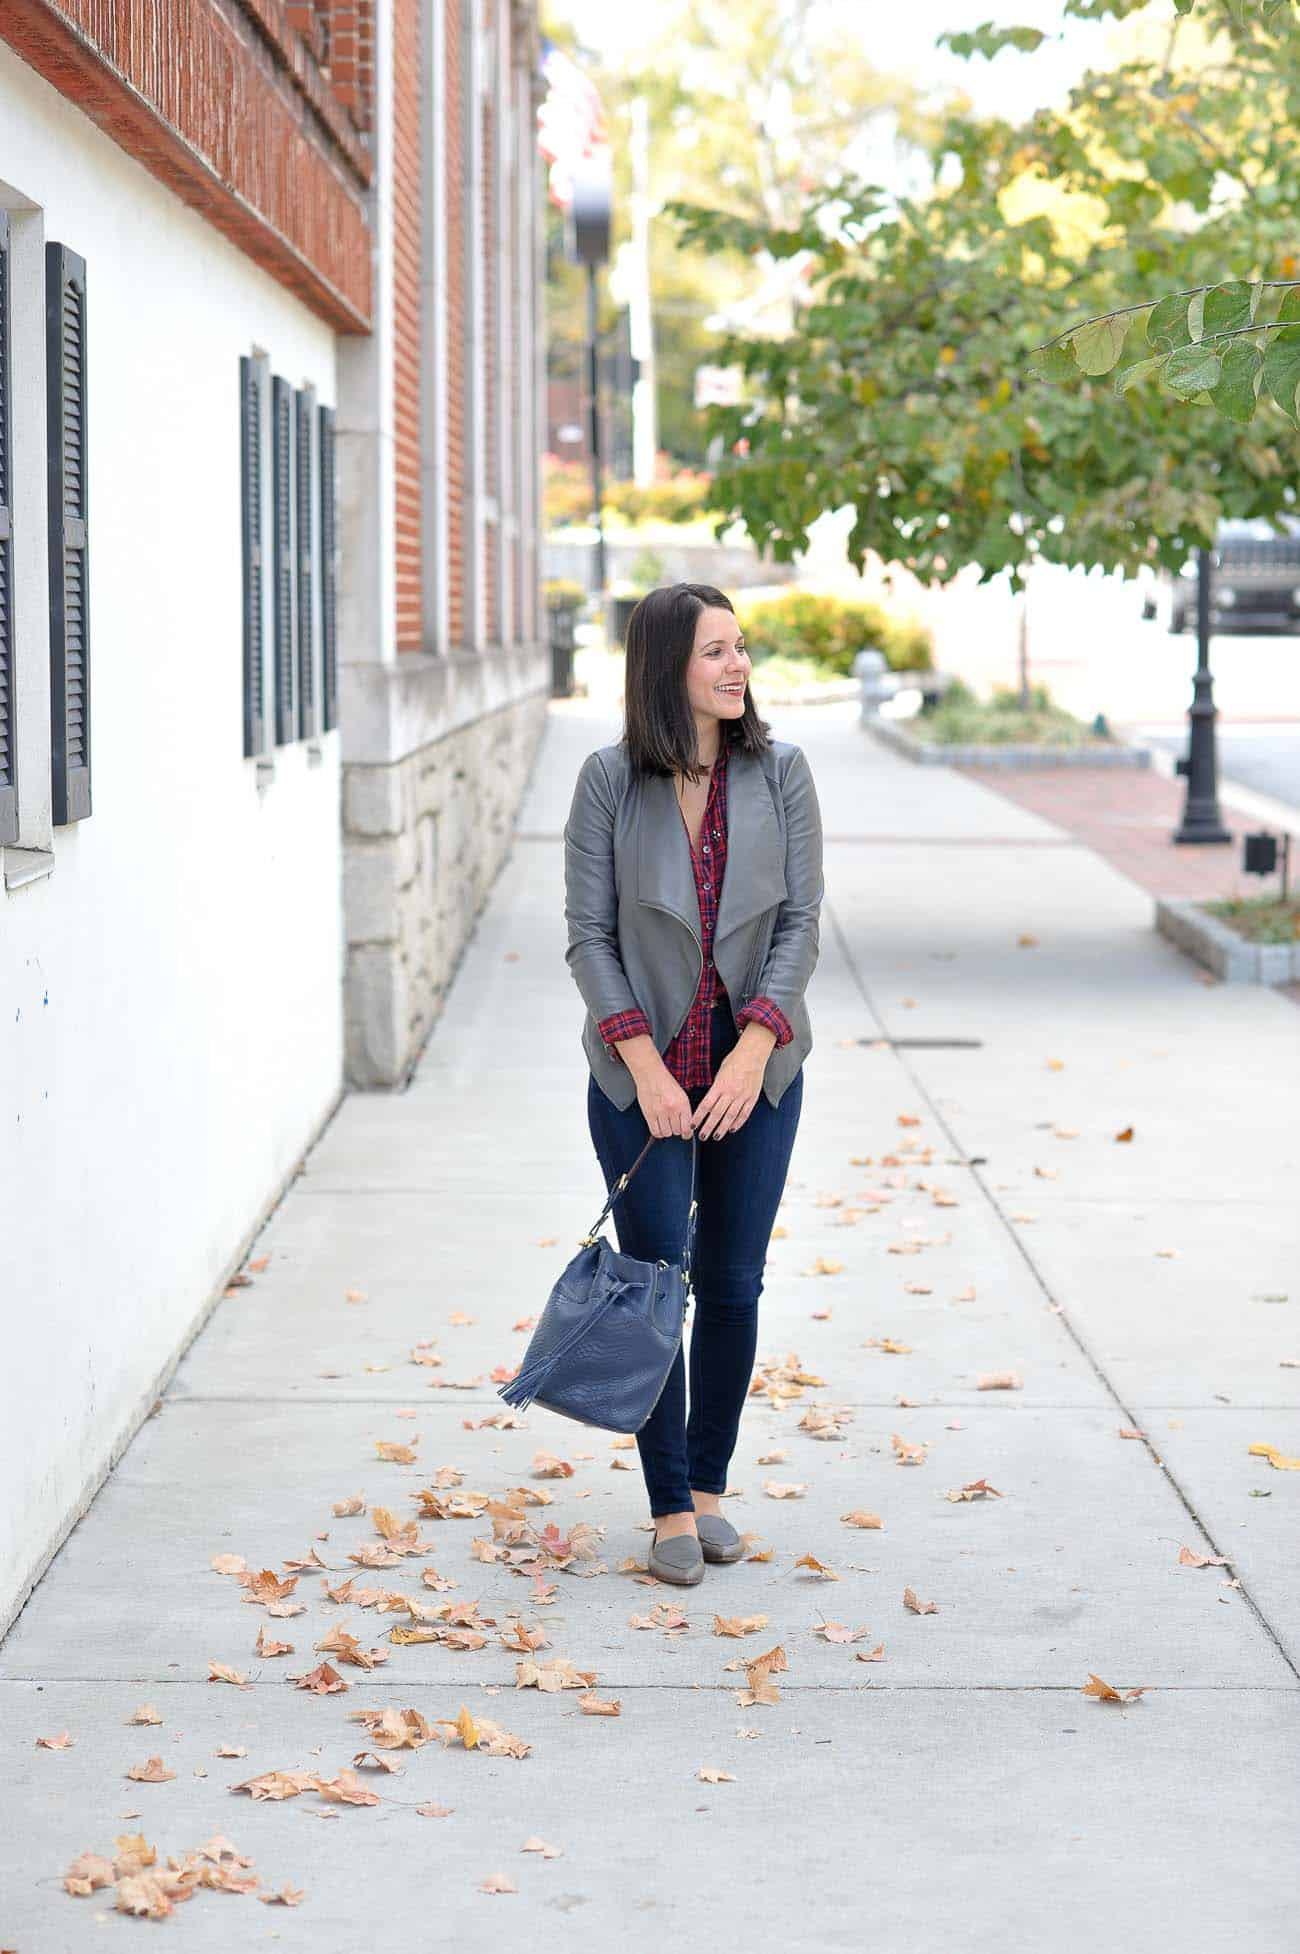 Madewell loafers, styling loafers for fall - My Style Vita @mystylevita